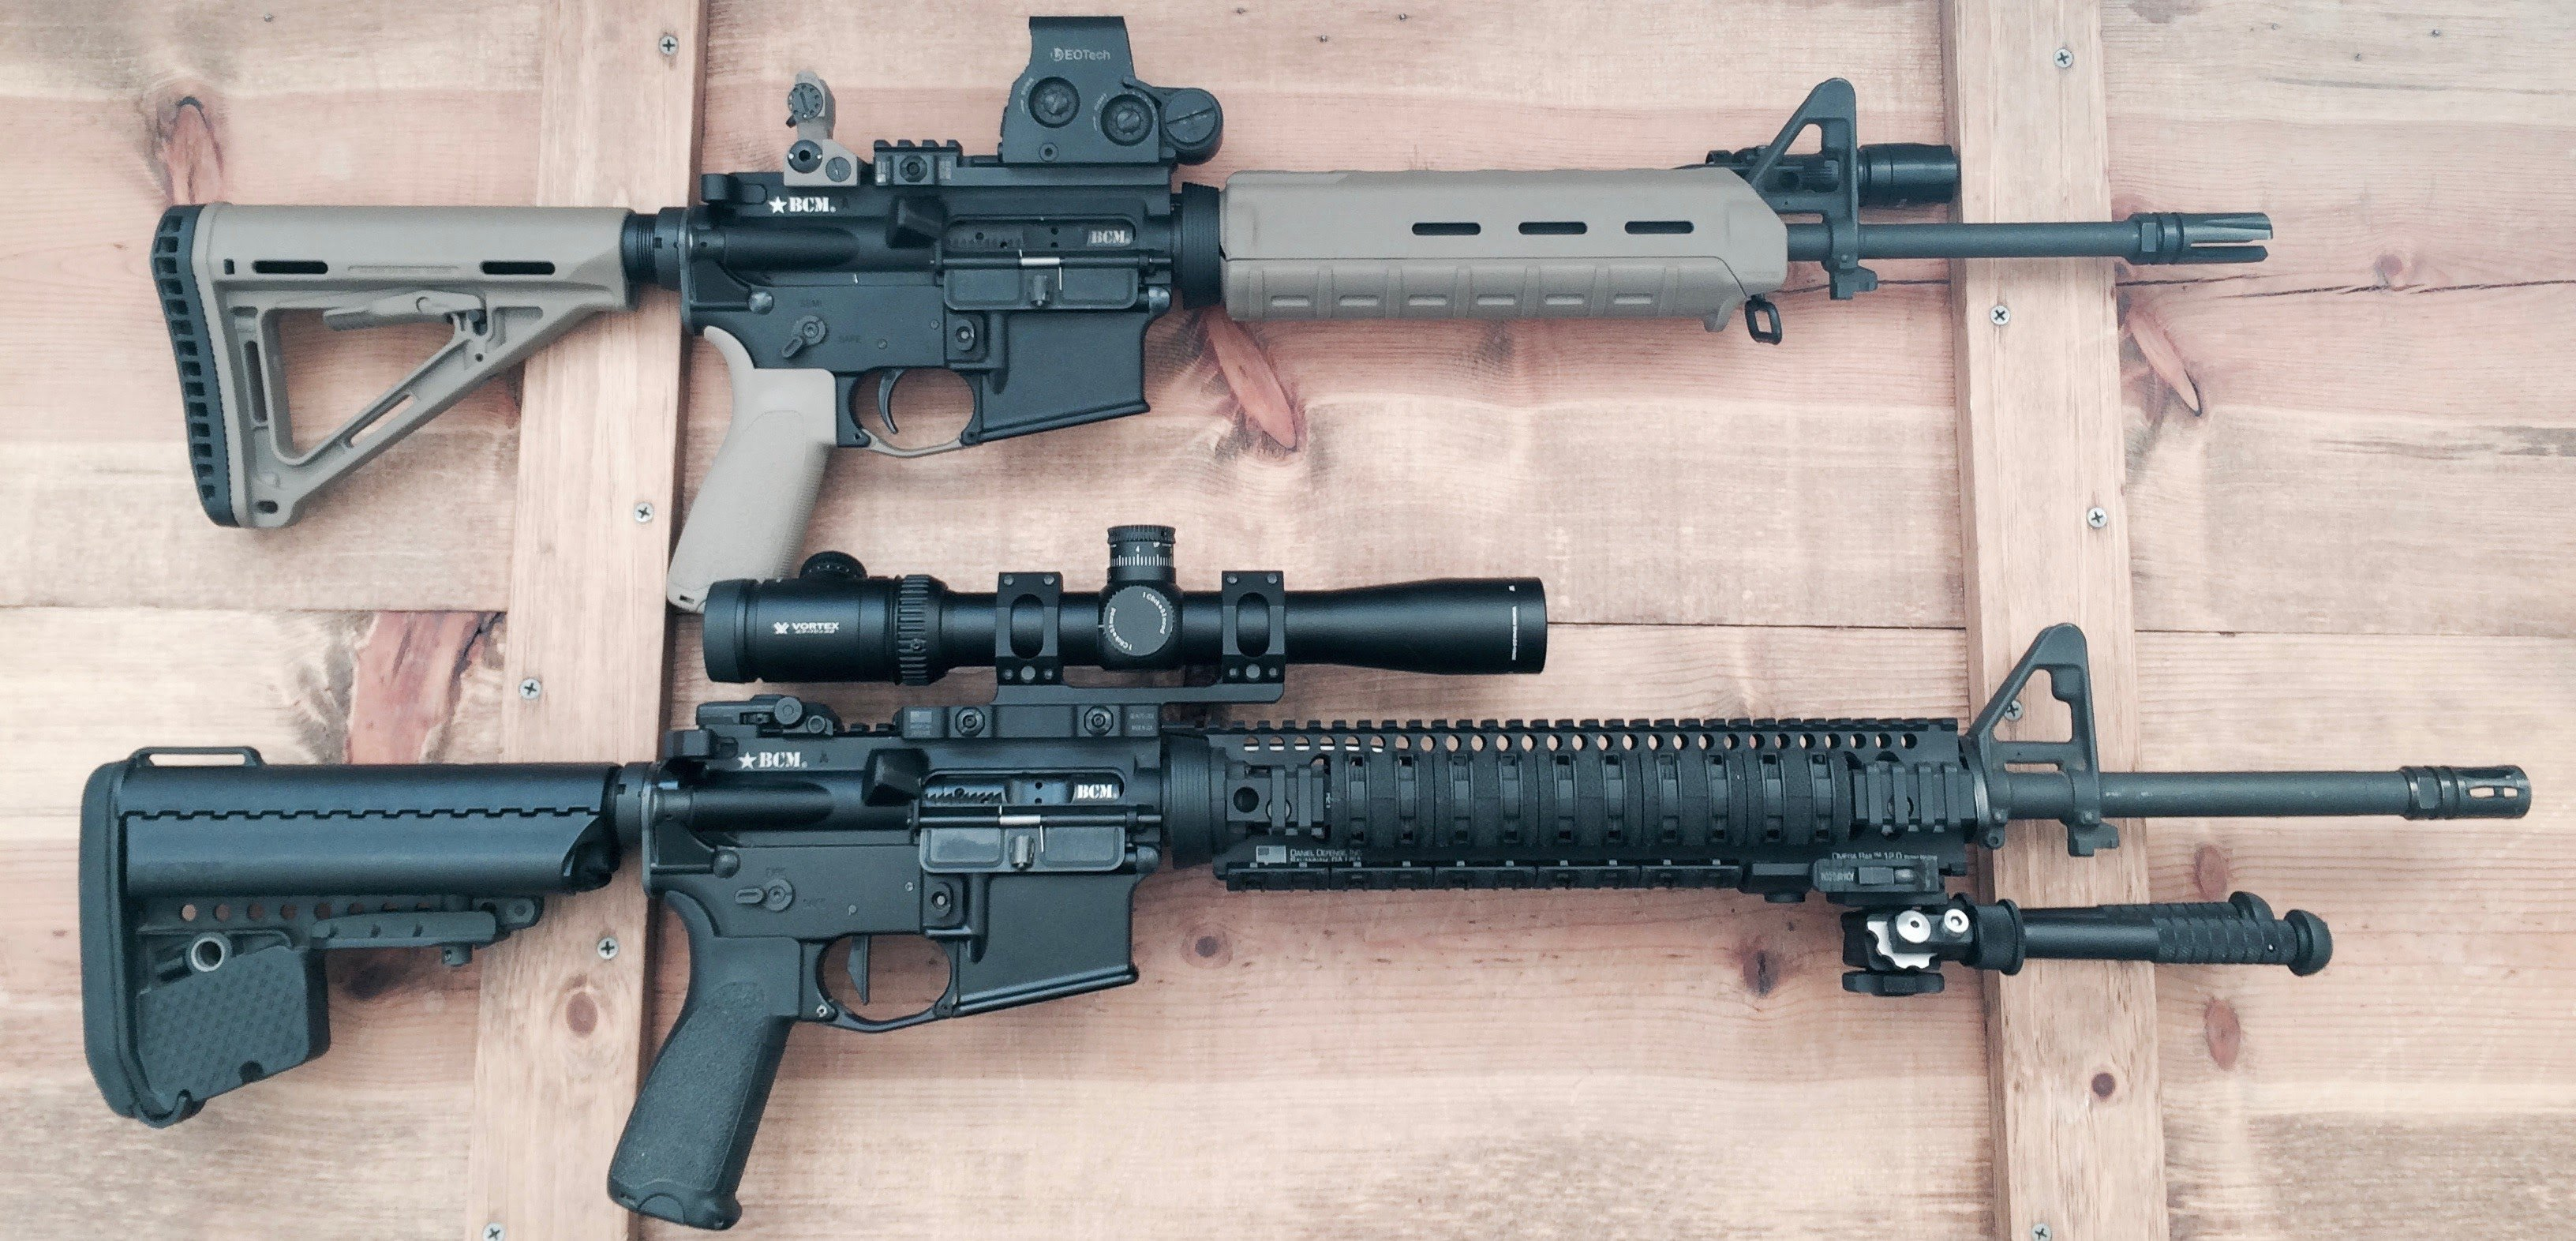 Practical Guide to Buying Your First AR-15 - The Everyday